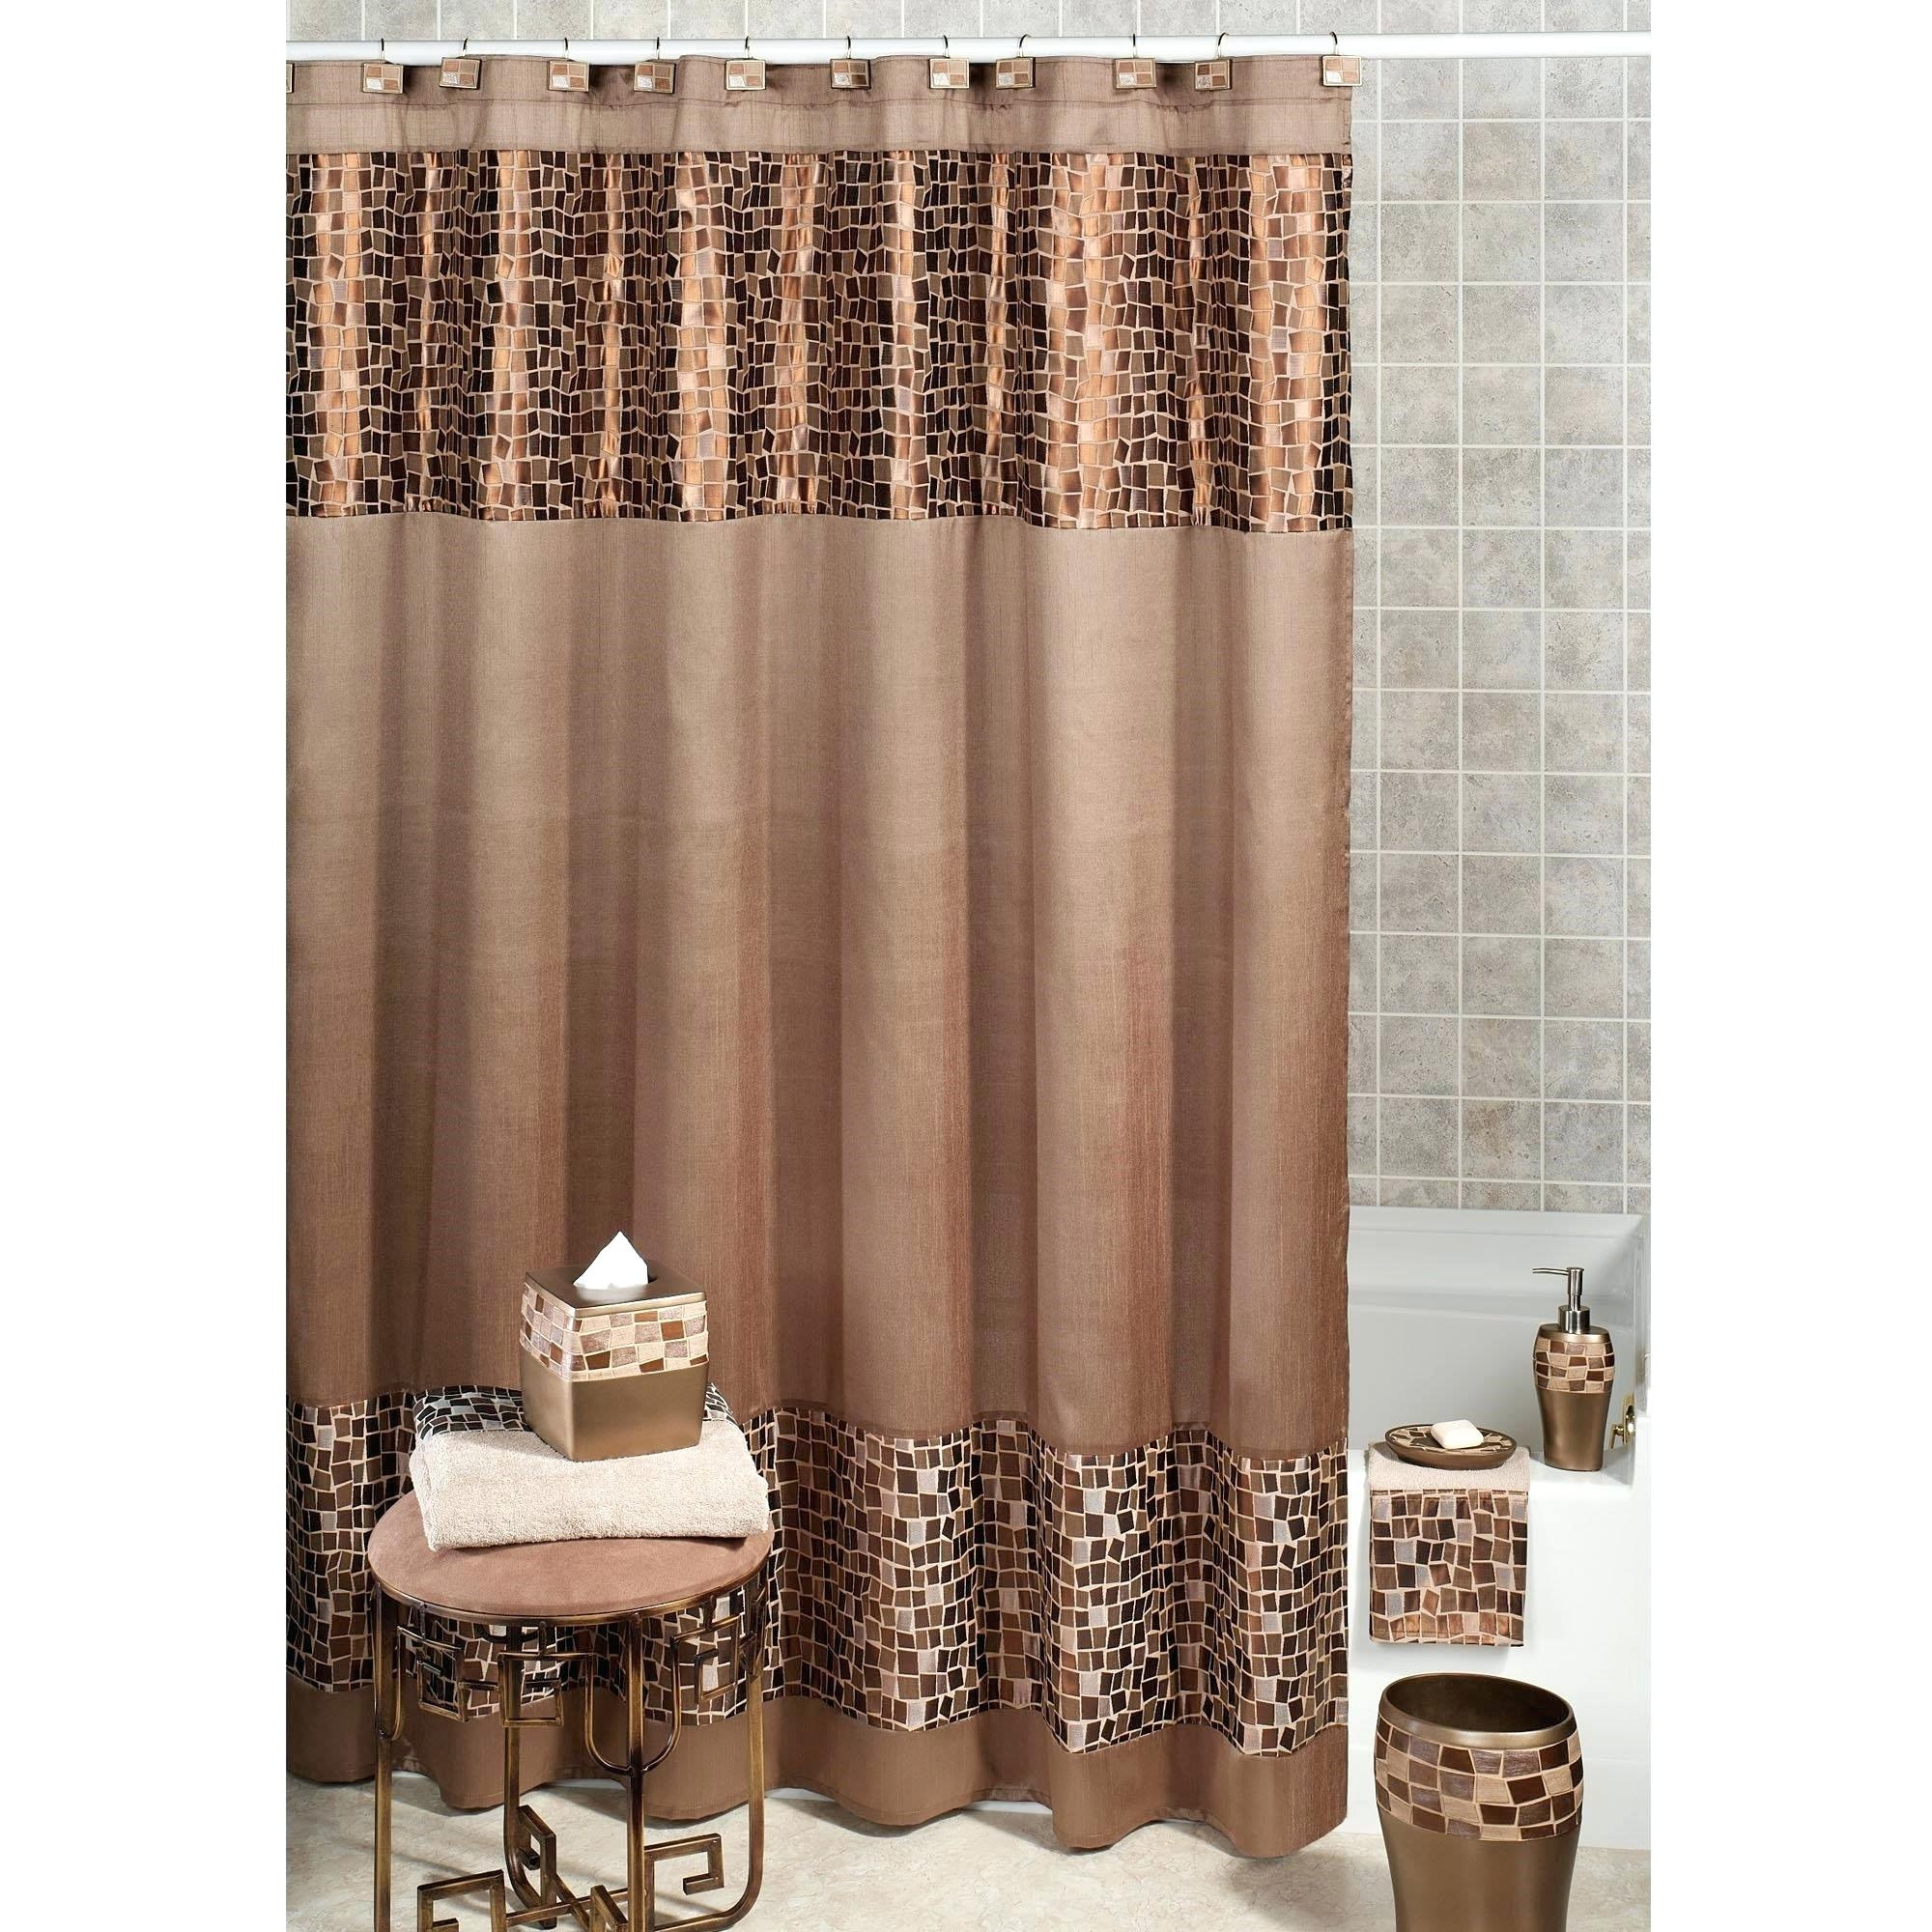 Moose Shower Curtain Rings • Shower Curtains Ideas